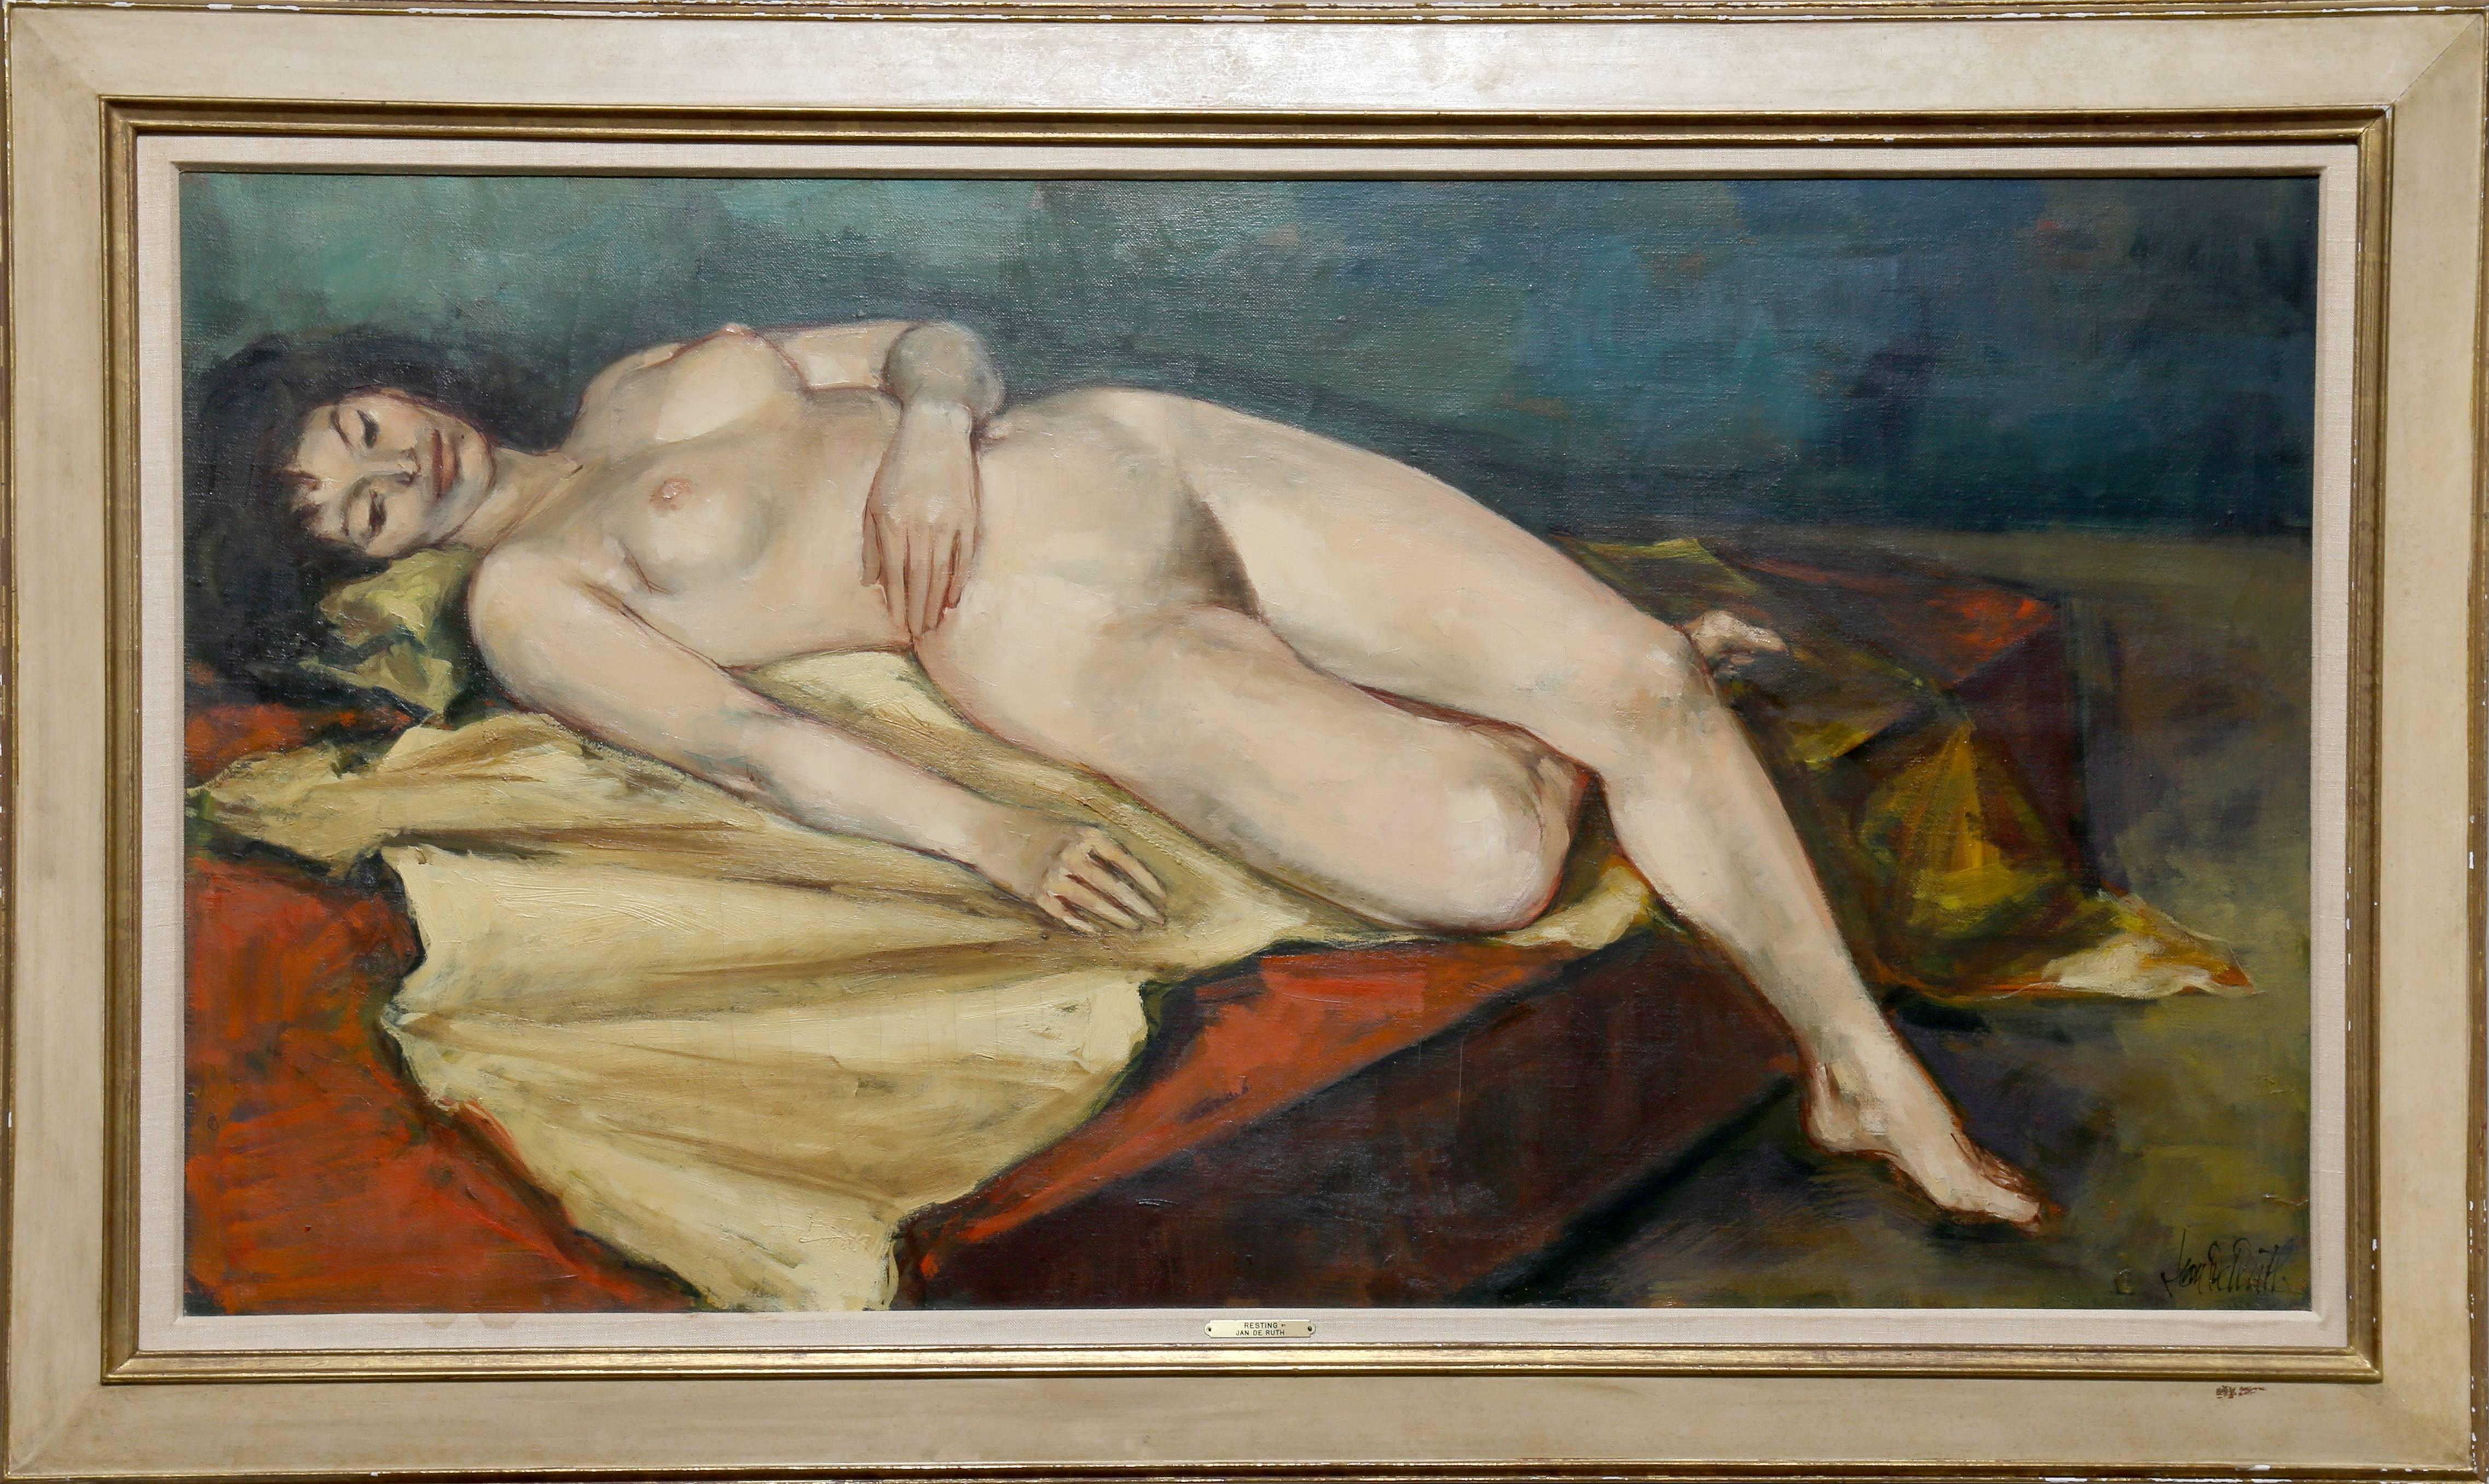 Resting Nude, Large Oil Painting by Jan De Ruth